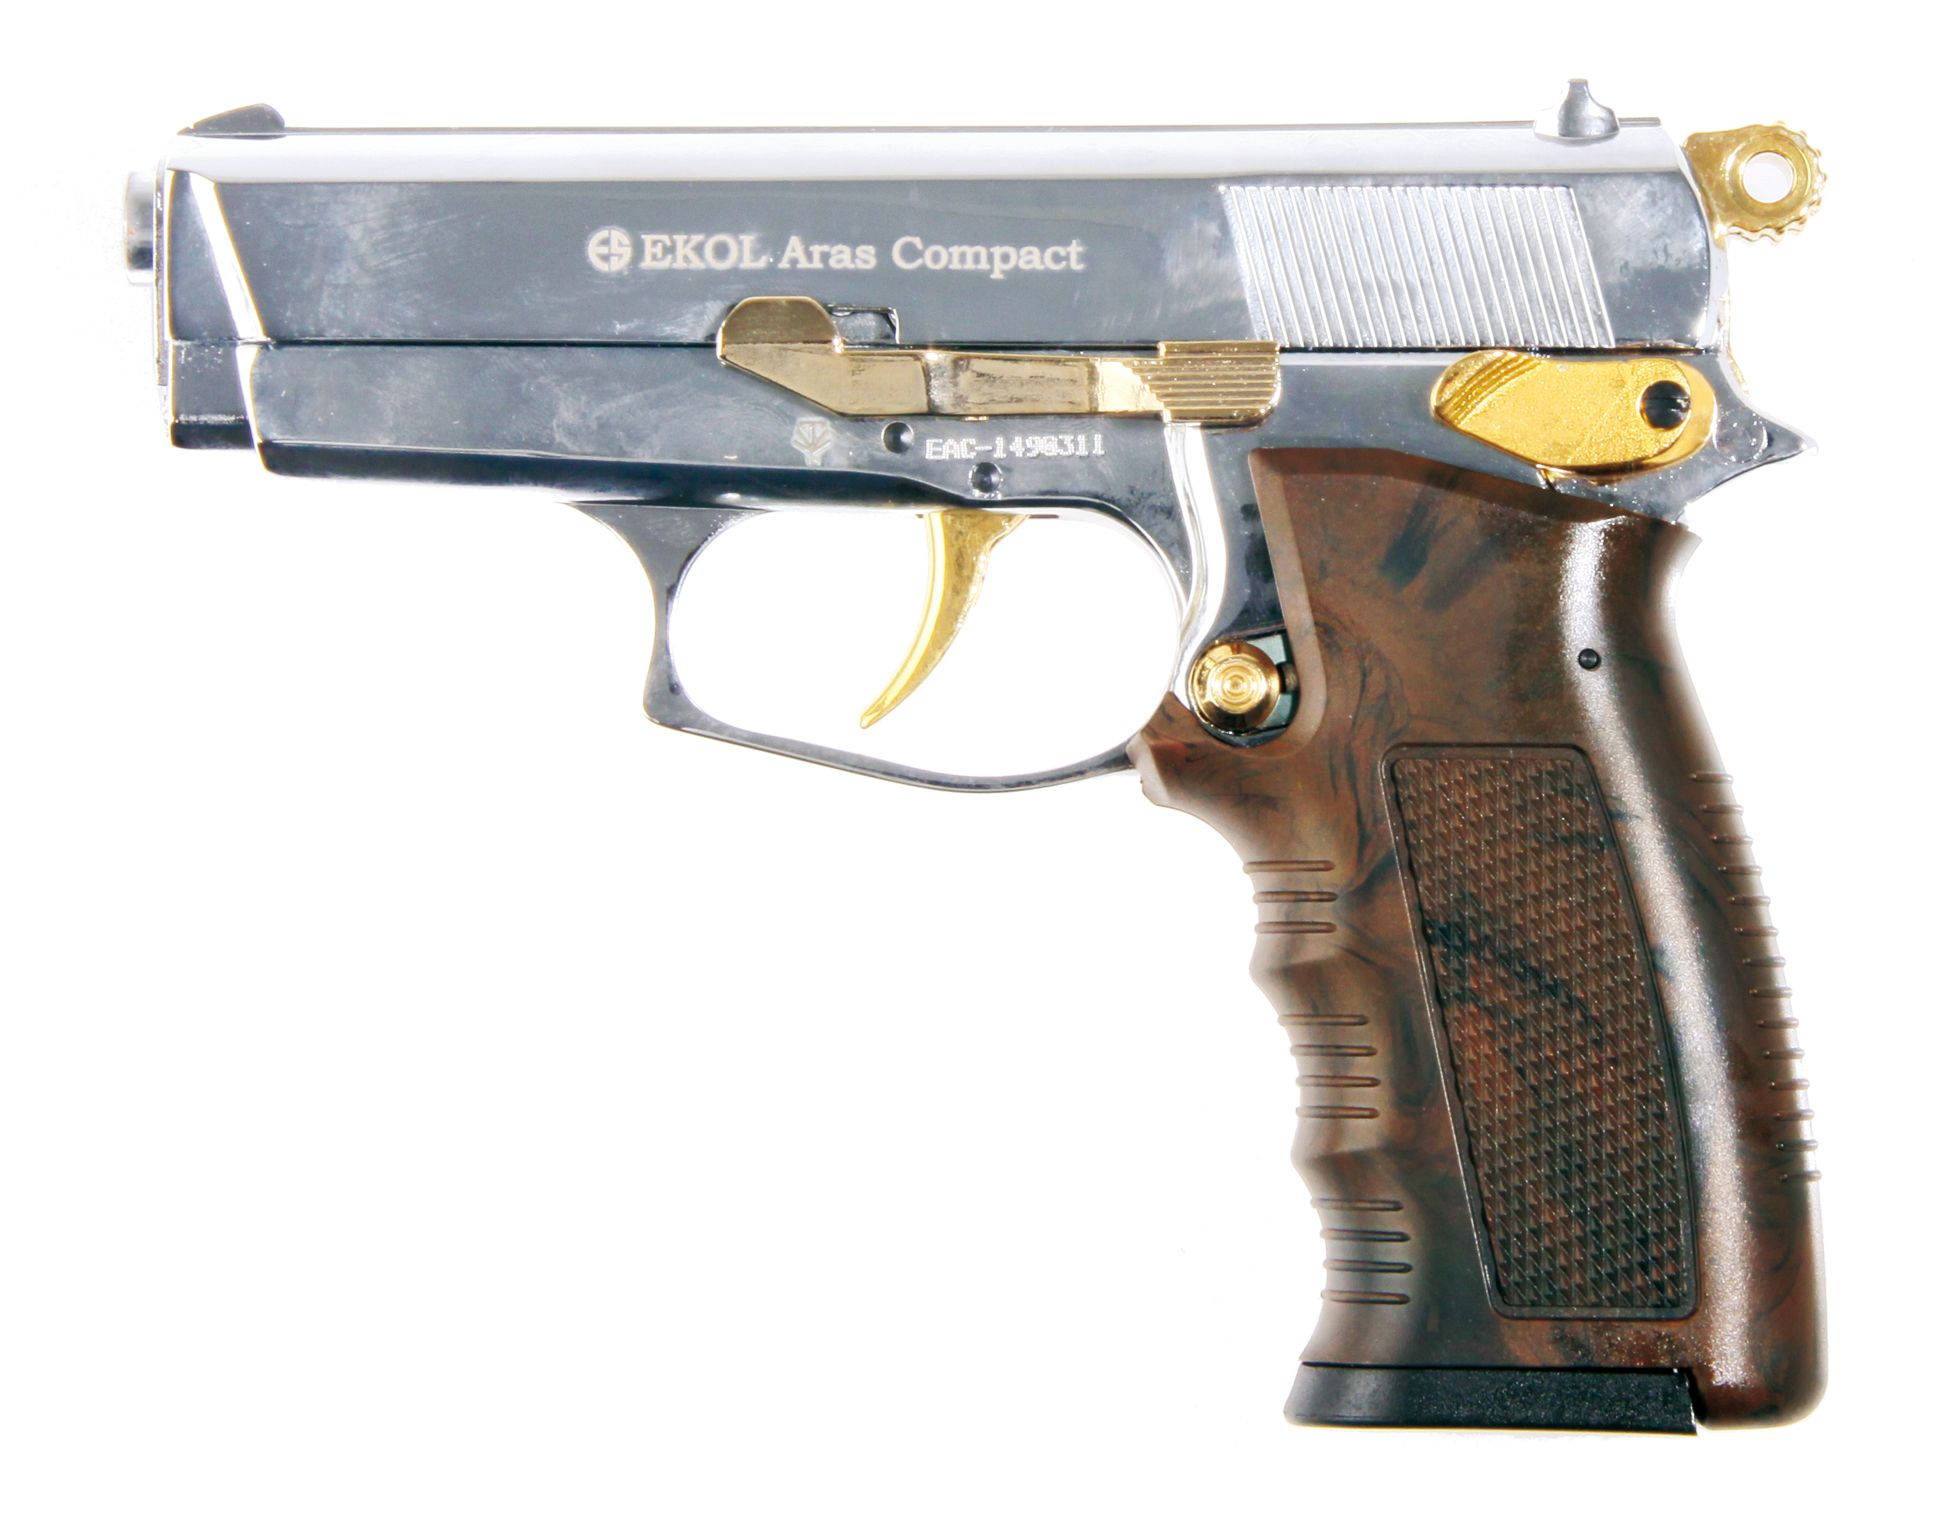 EKOL ARAS COMPACT 9MM SHINY CHROME GOLD